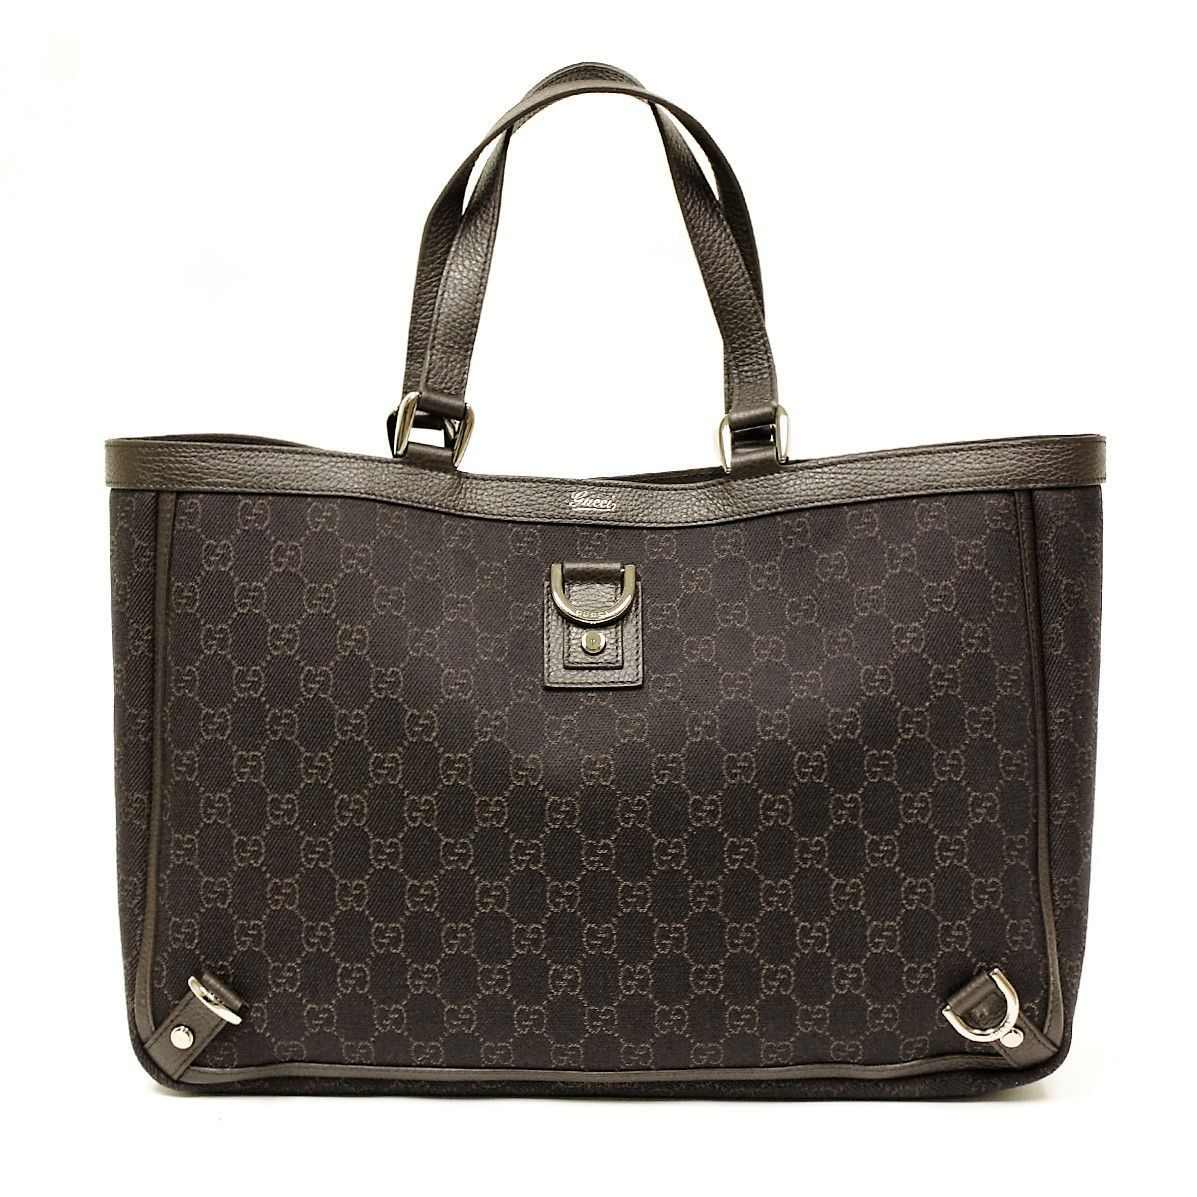 3c924c2ee2c6 Gucci Brown Denim Abbey D Ring Large Tote Bag   Products   Denim ...